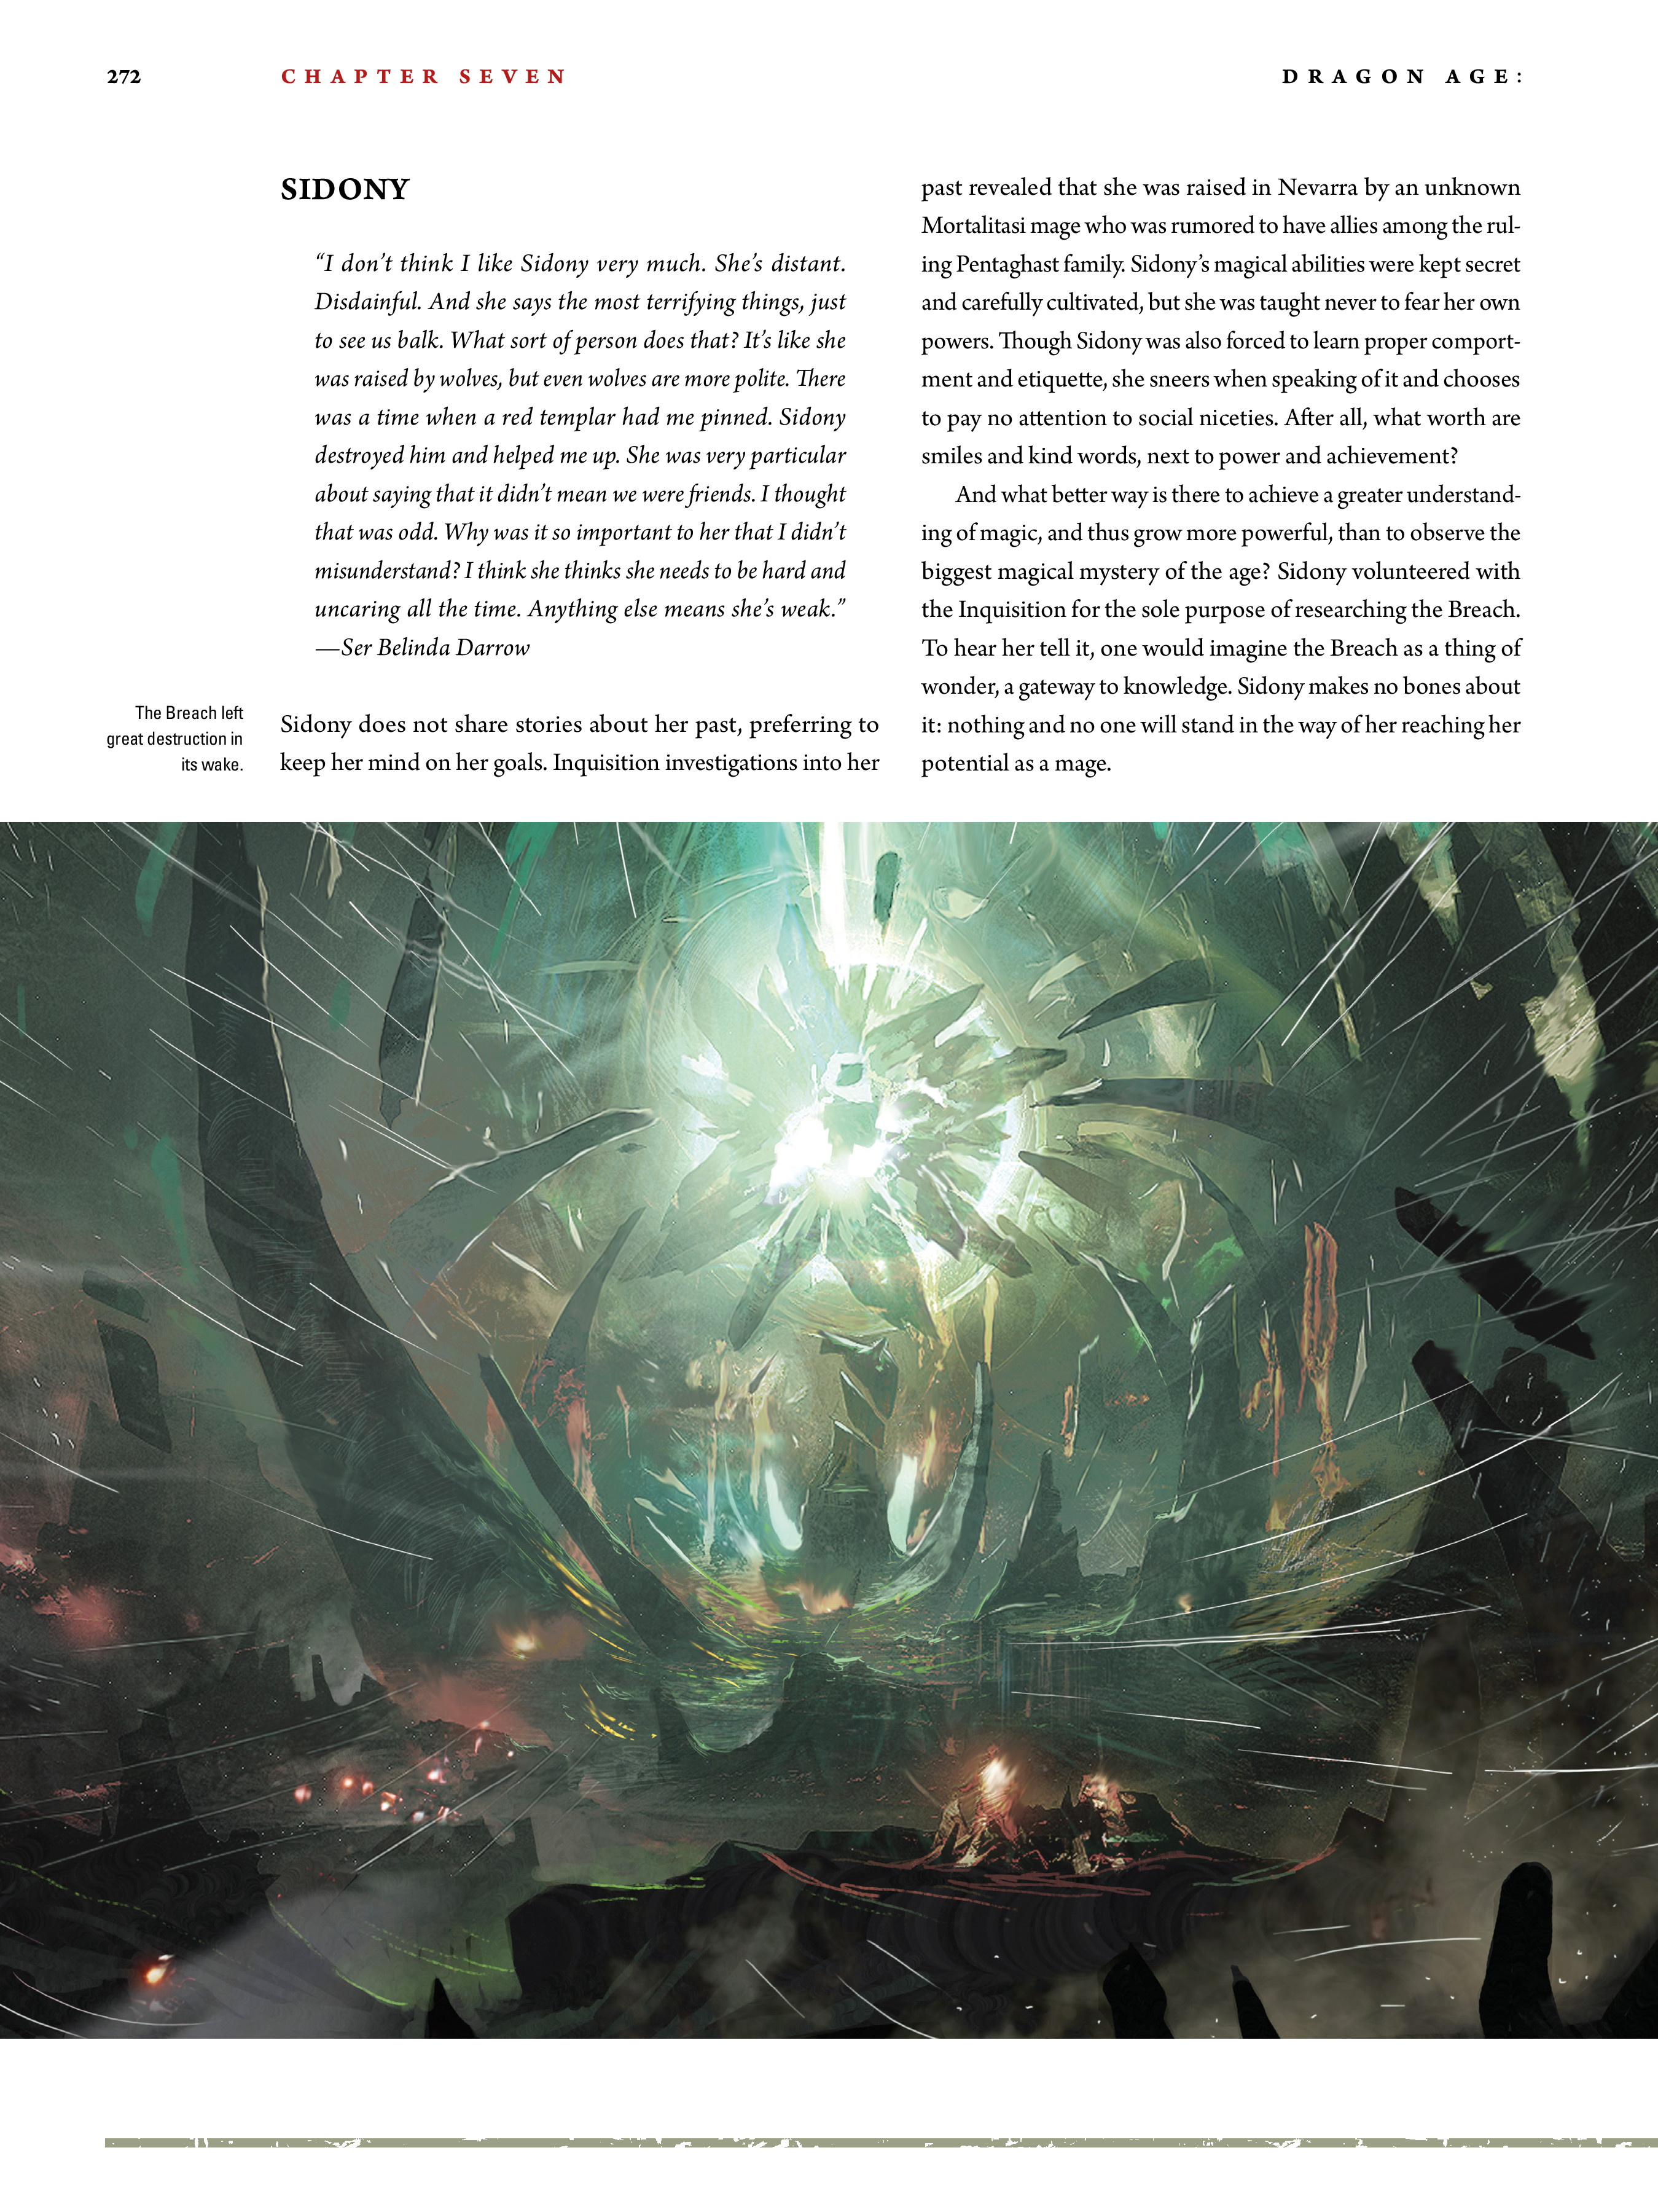 Read online Dragon Age: The World of Thedas comic -  Issue # TPB 2 - 264